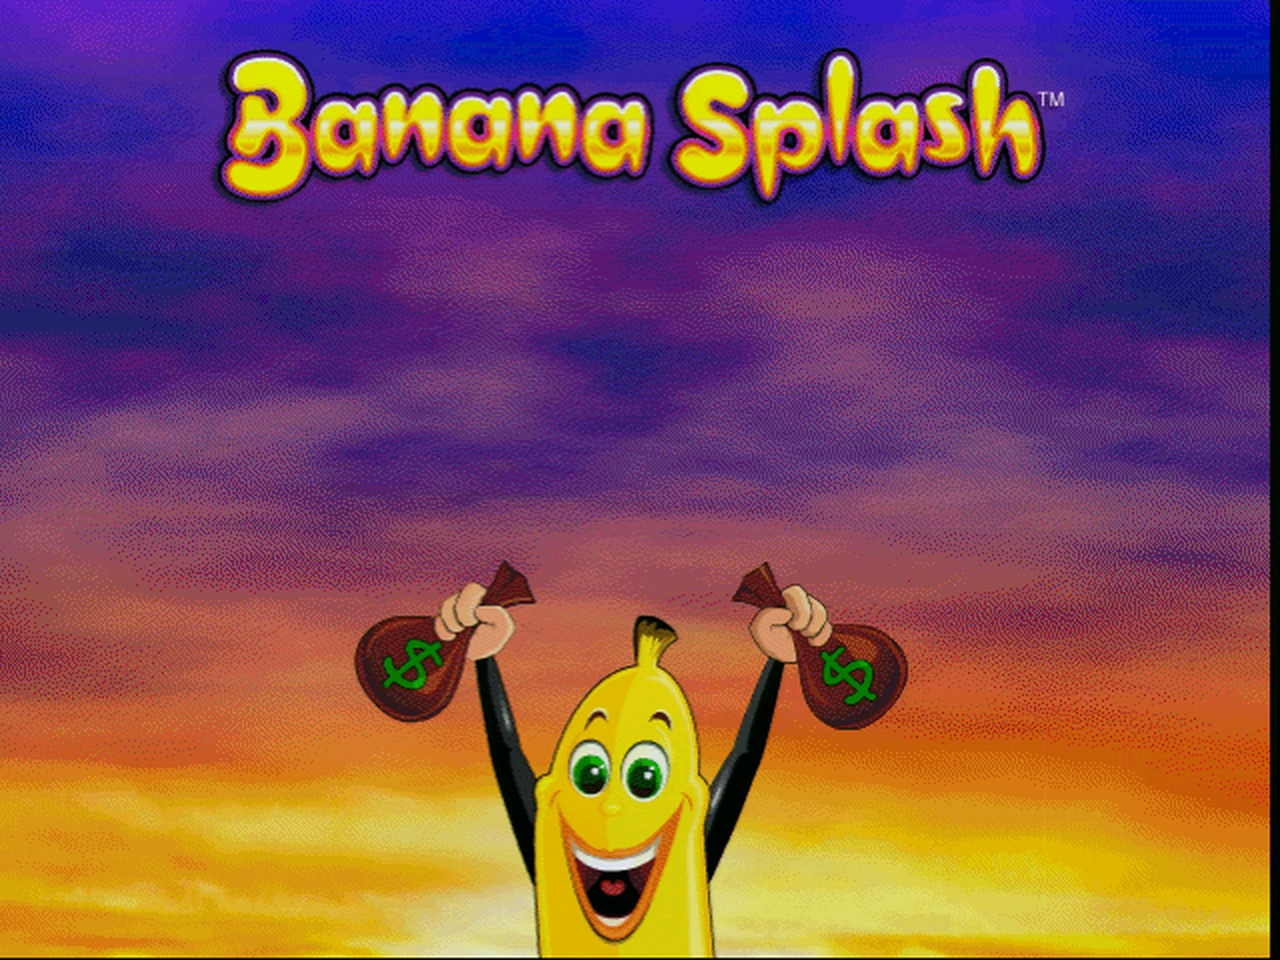 The Banana Splash Online Slot Demo Game by Novomatic